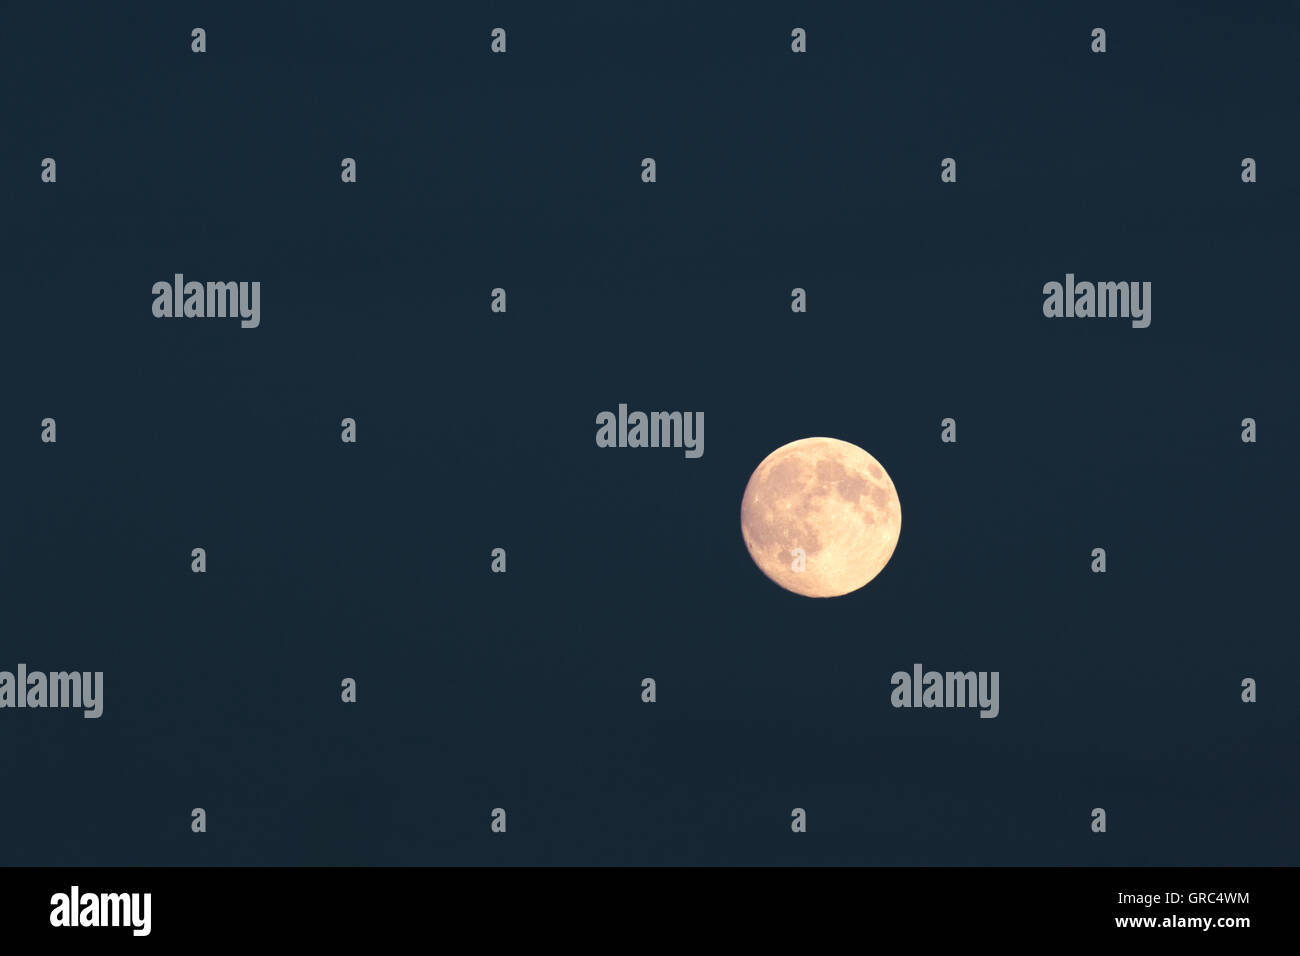 Full Moon Over Dark Blue Night Sky - Stock Image